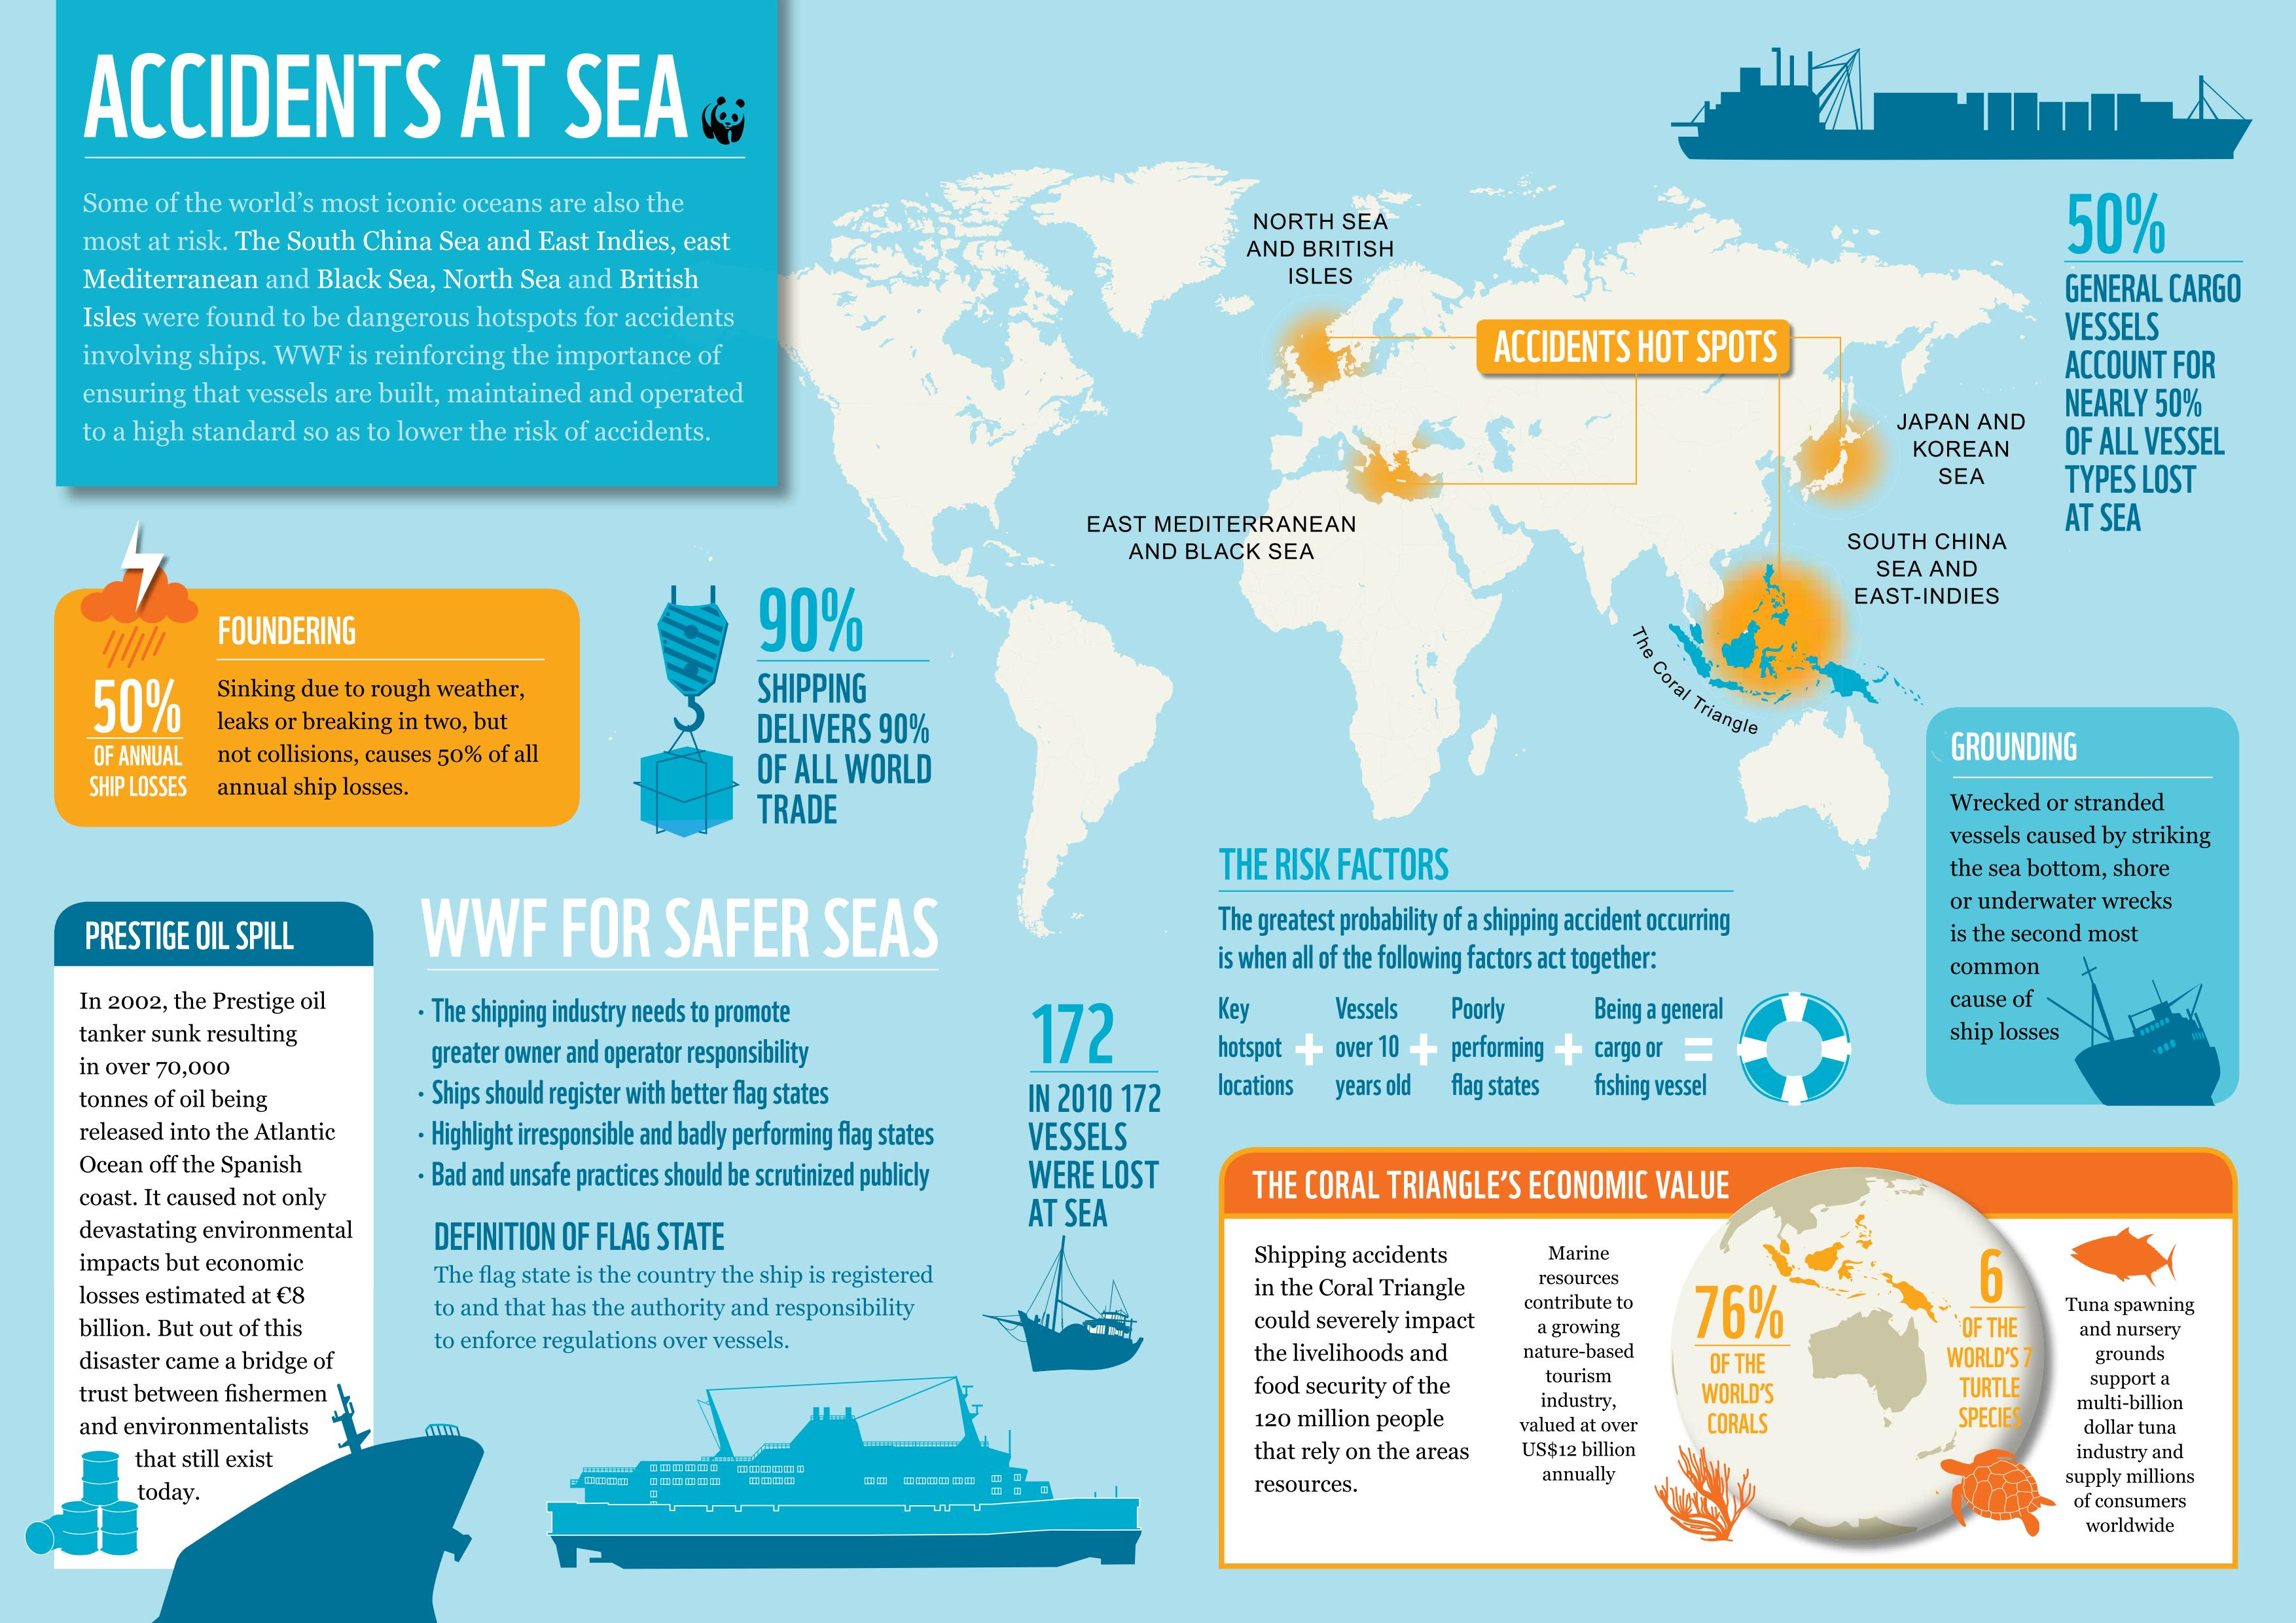 Worlds Most Dangerous Oceans For Shipping Identified